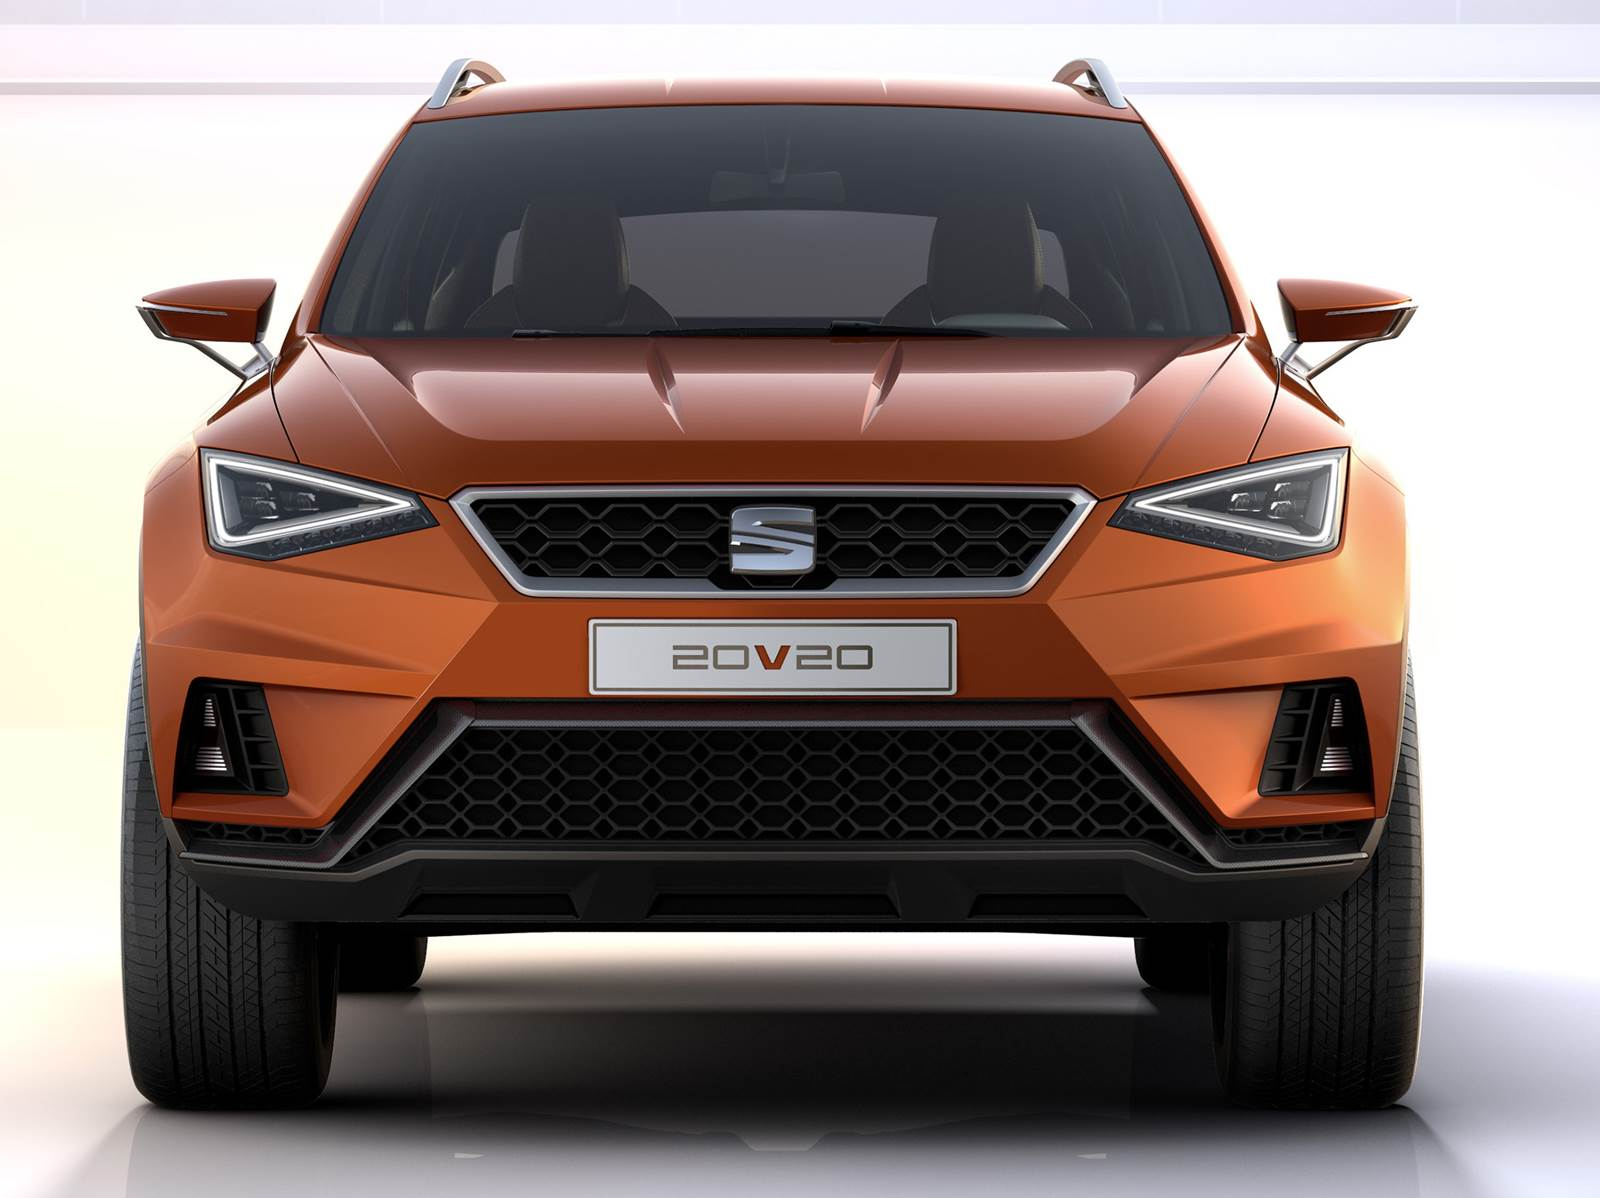 SEAT 20V20: SUV derivado do Golf 7